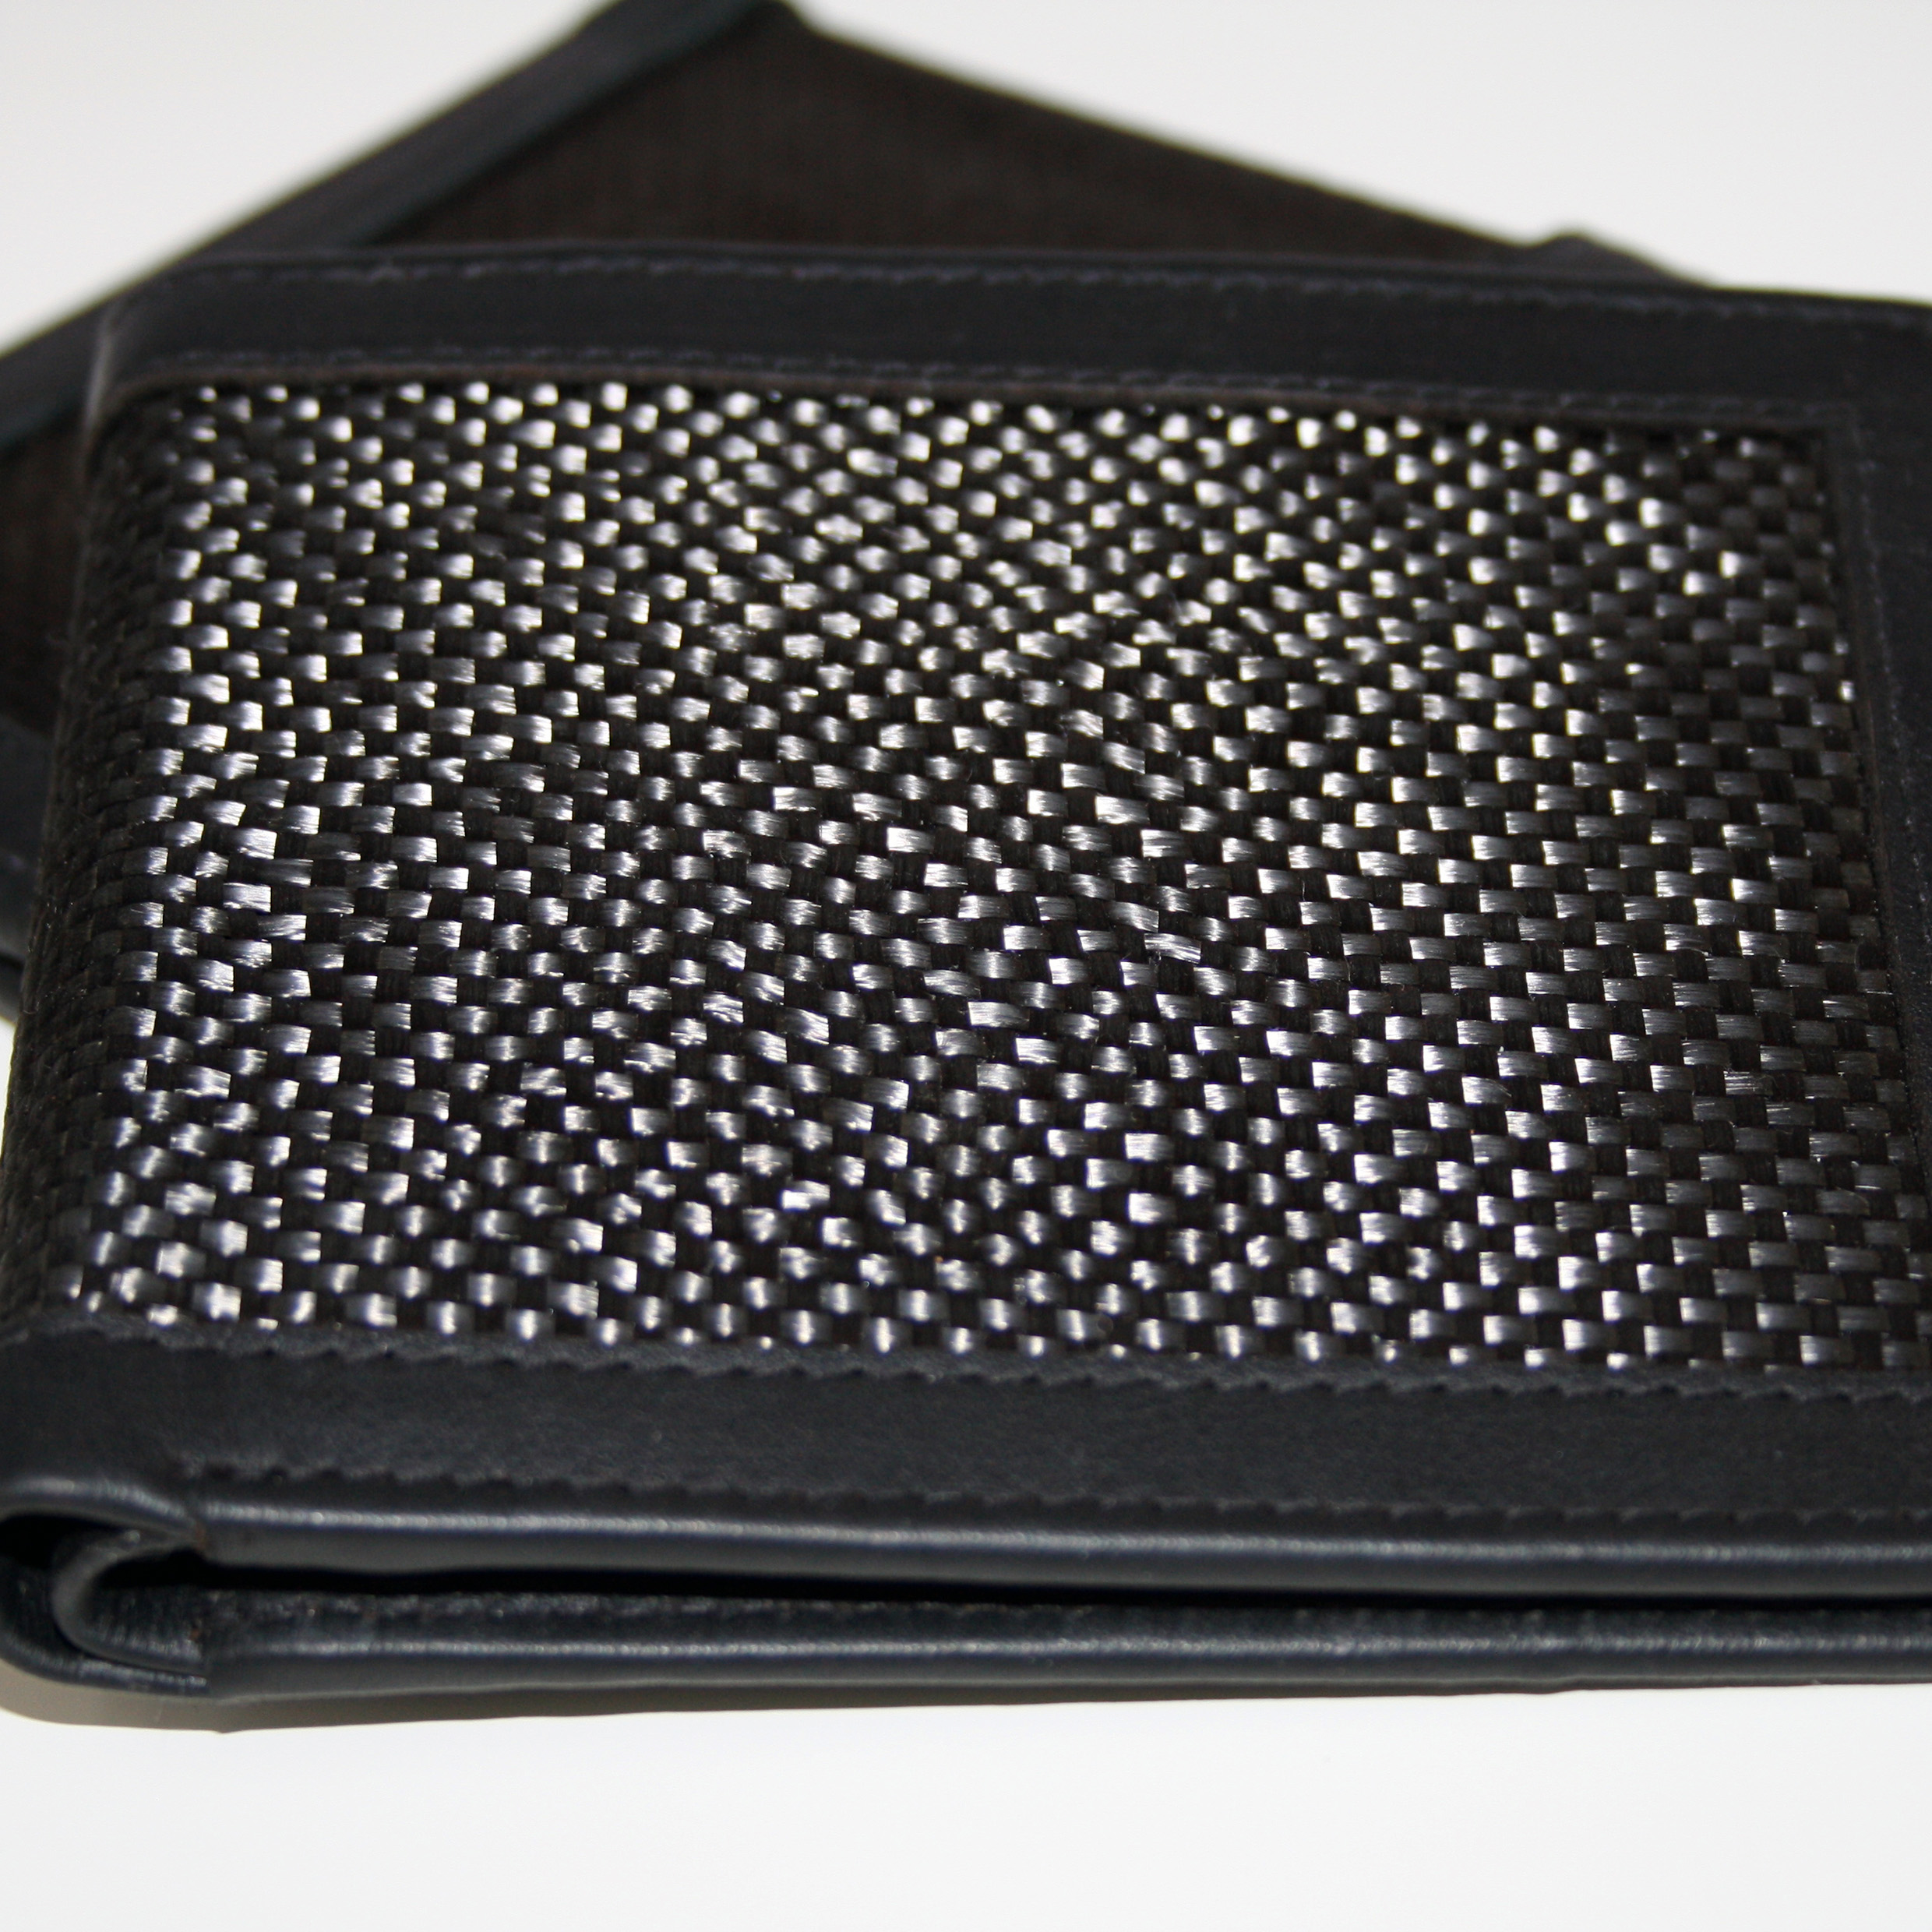 Formula One Carbon Fibre Wallet